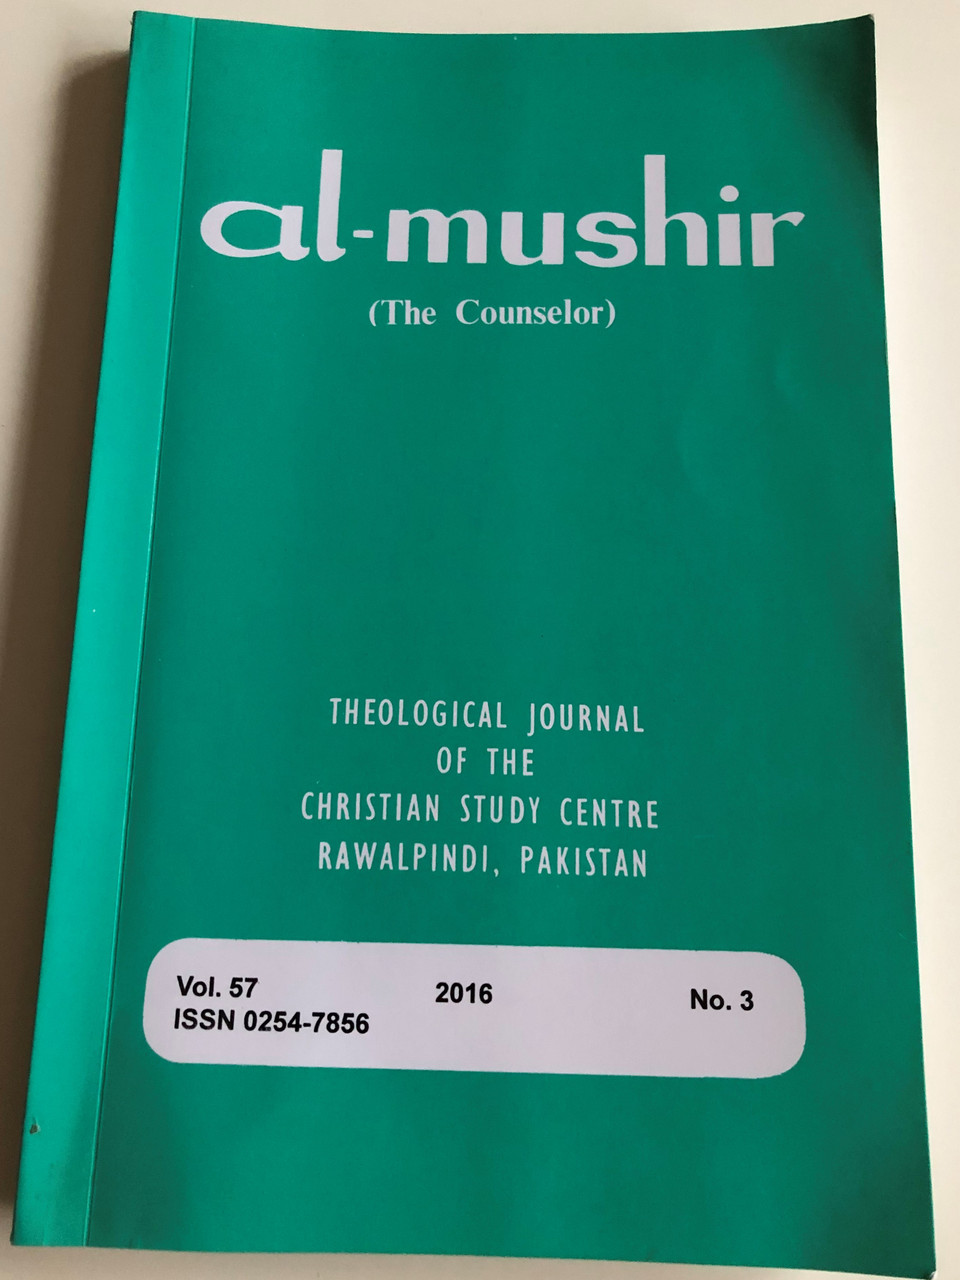 Al Mushir The Counselor Theological Journal Of The Christian